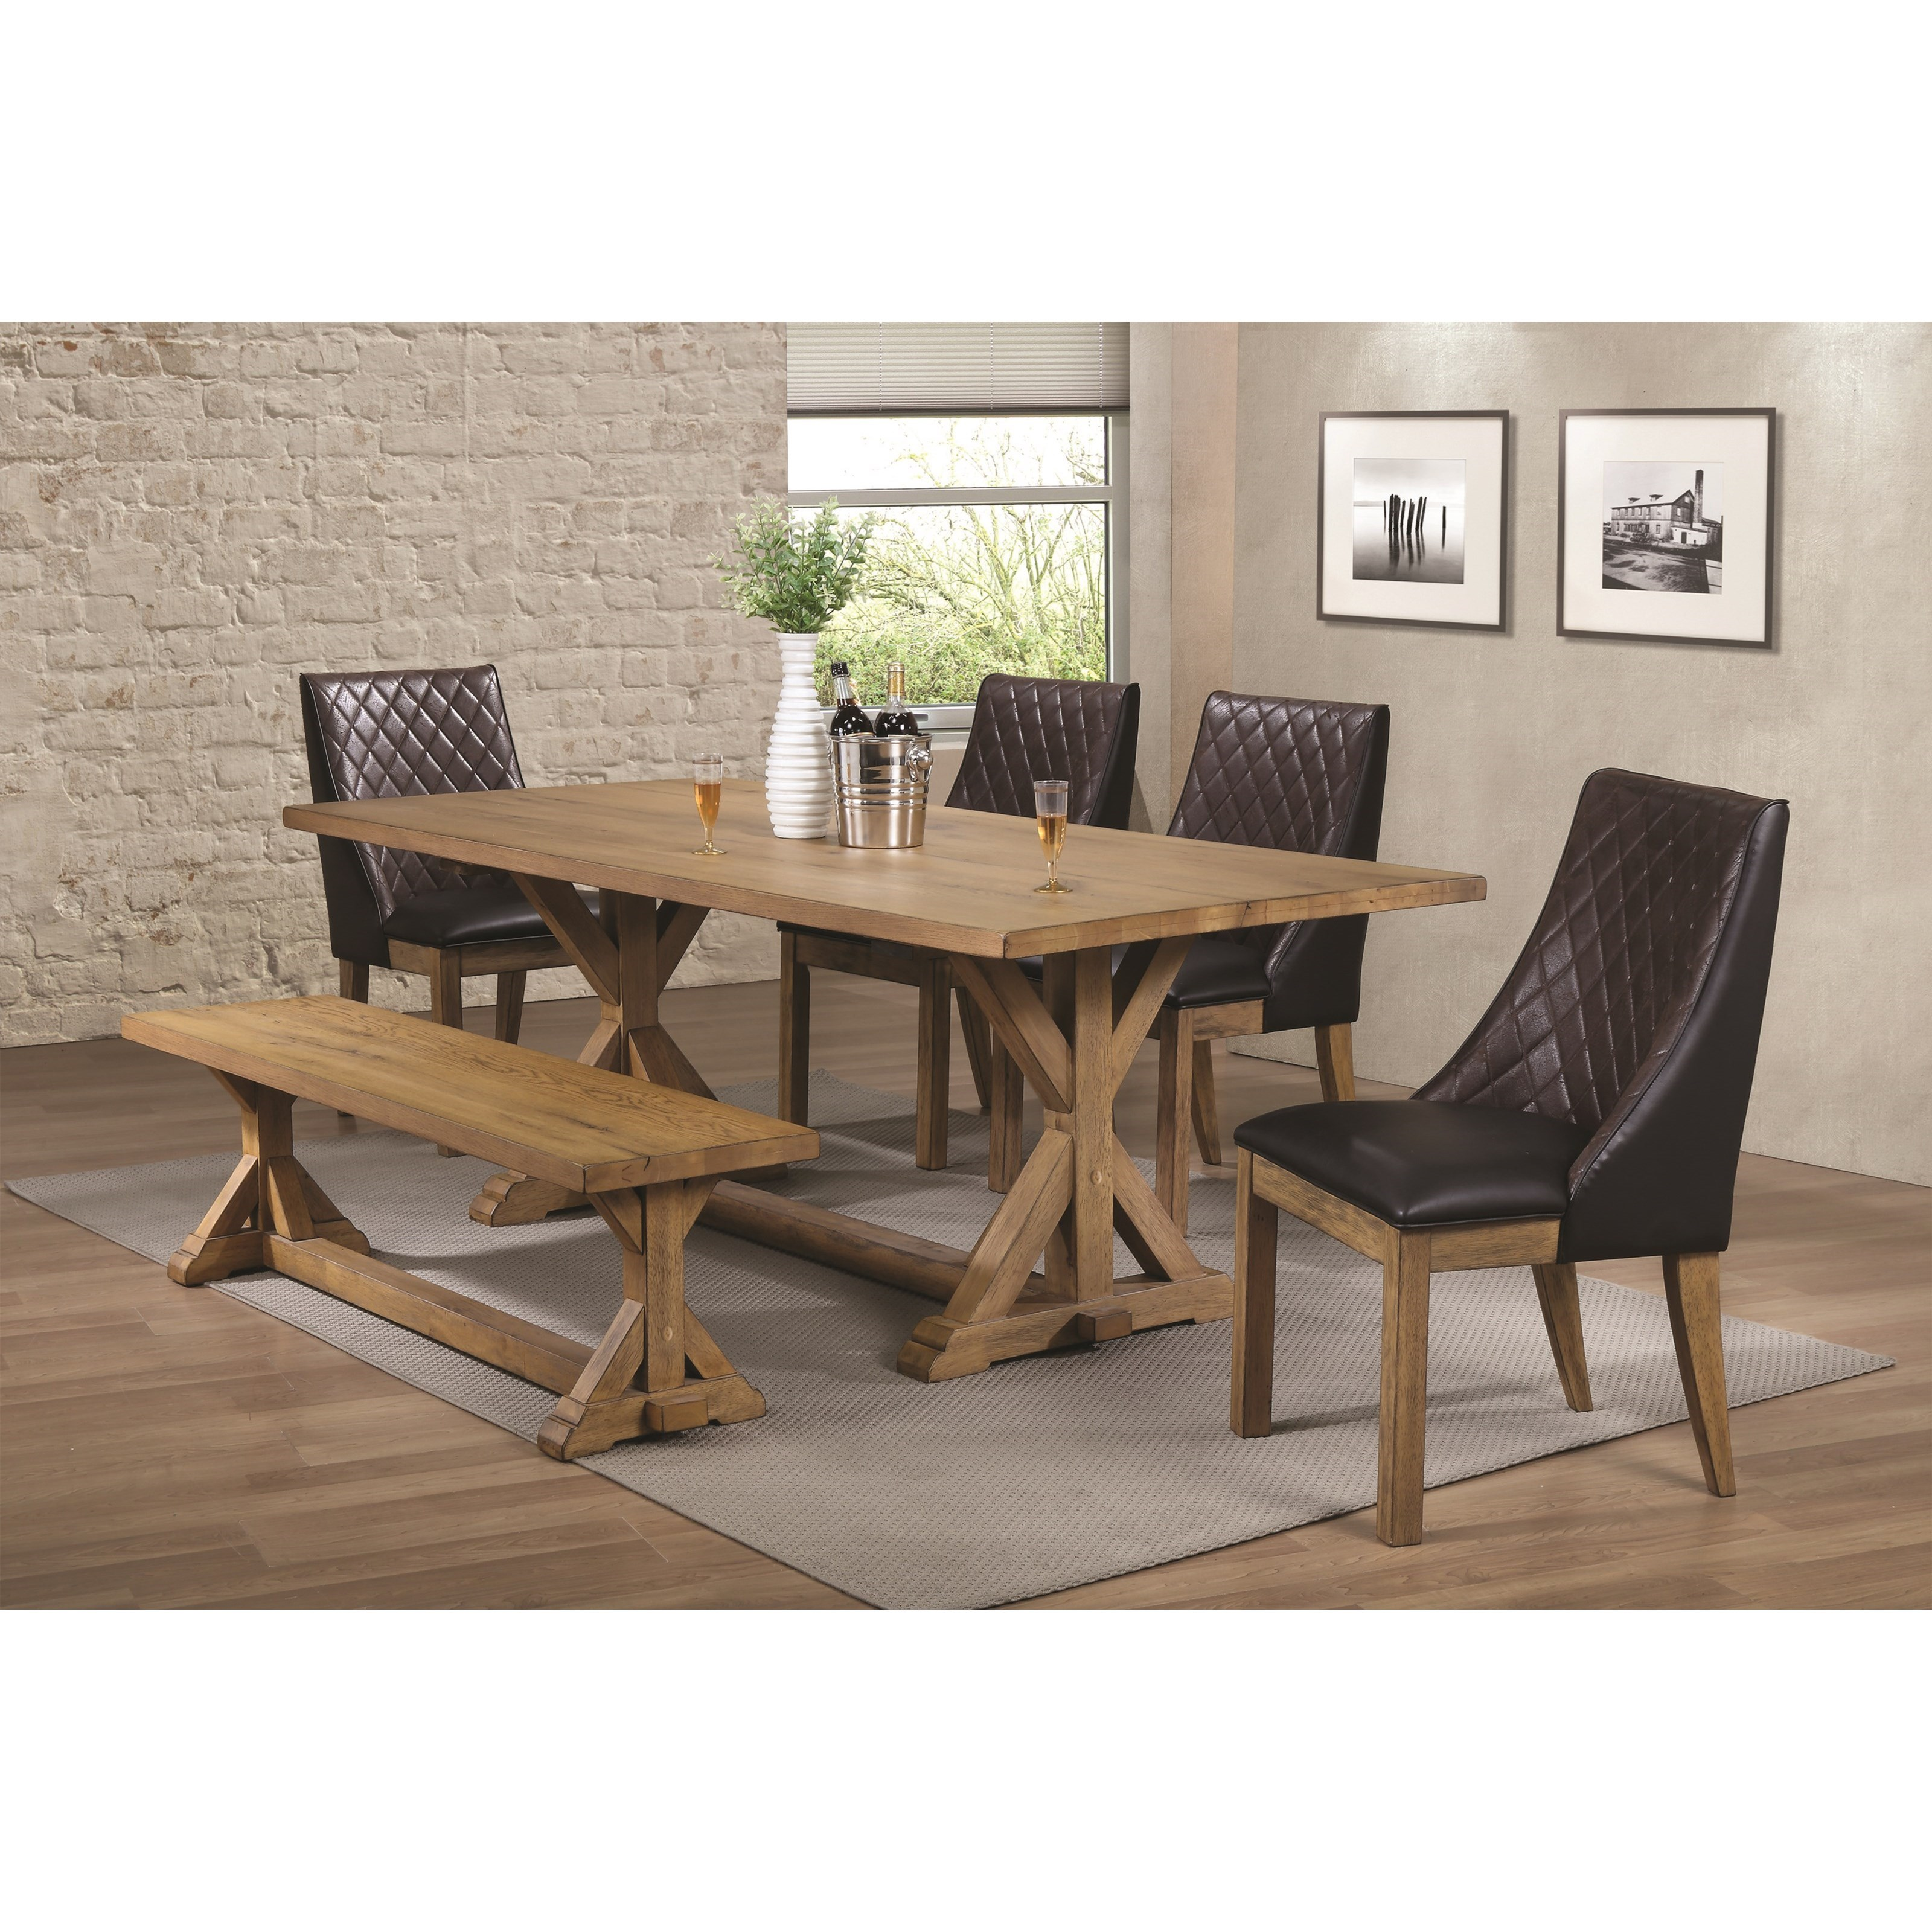 Coaster Douglas Dining Table Set With Bench   Item Number:  107221+107223+4x107222